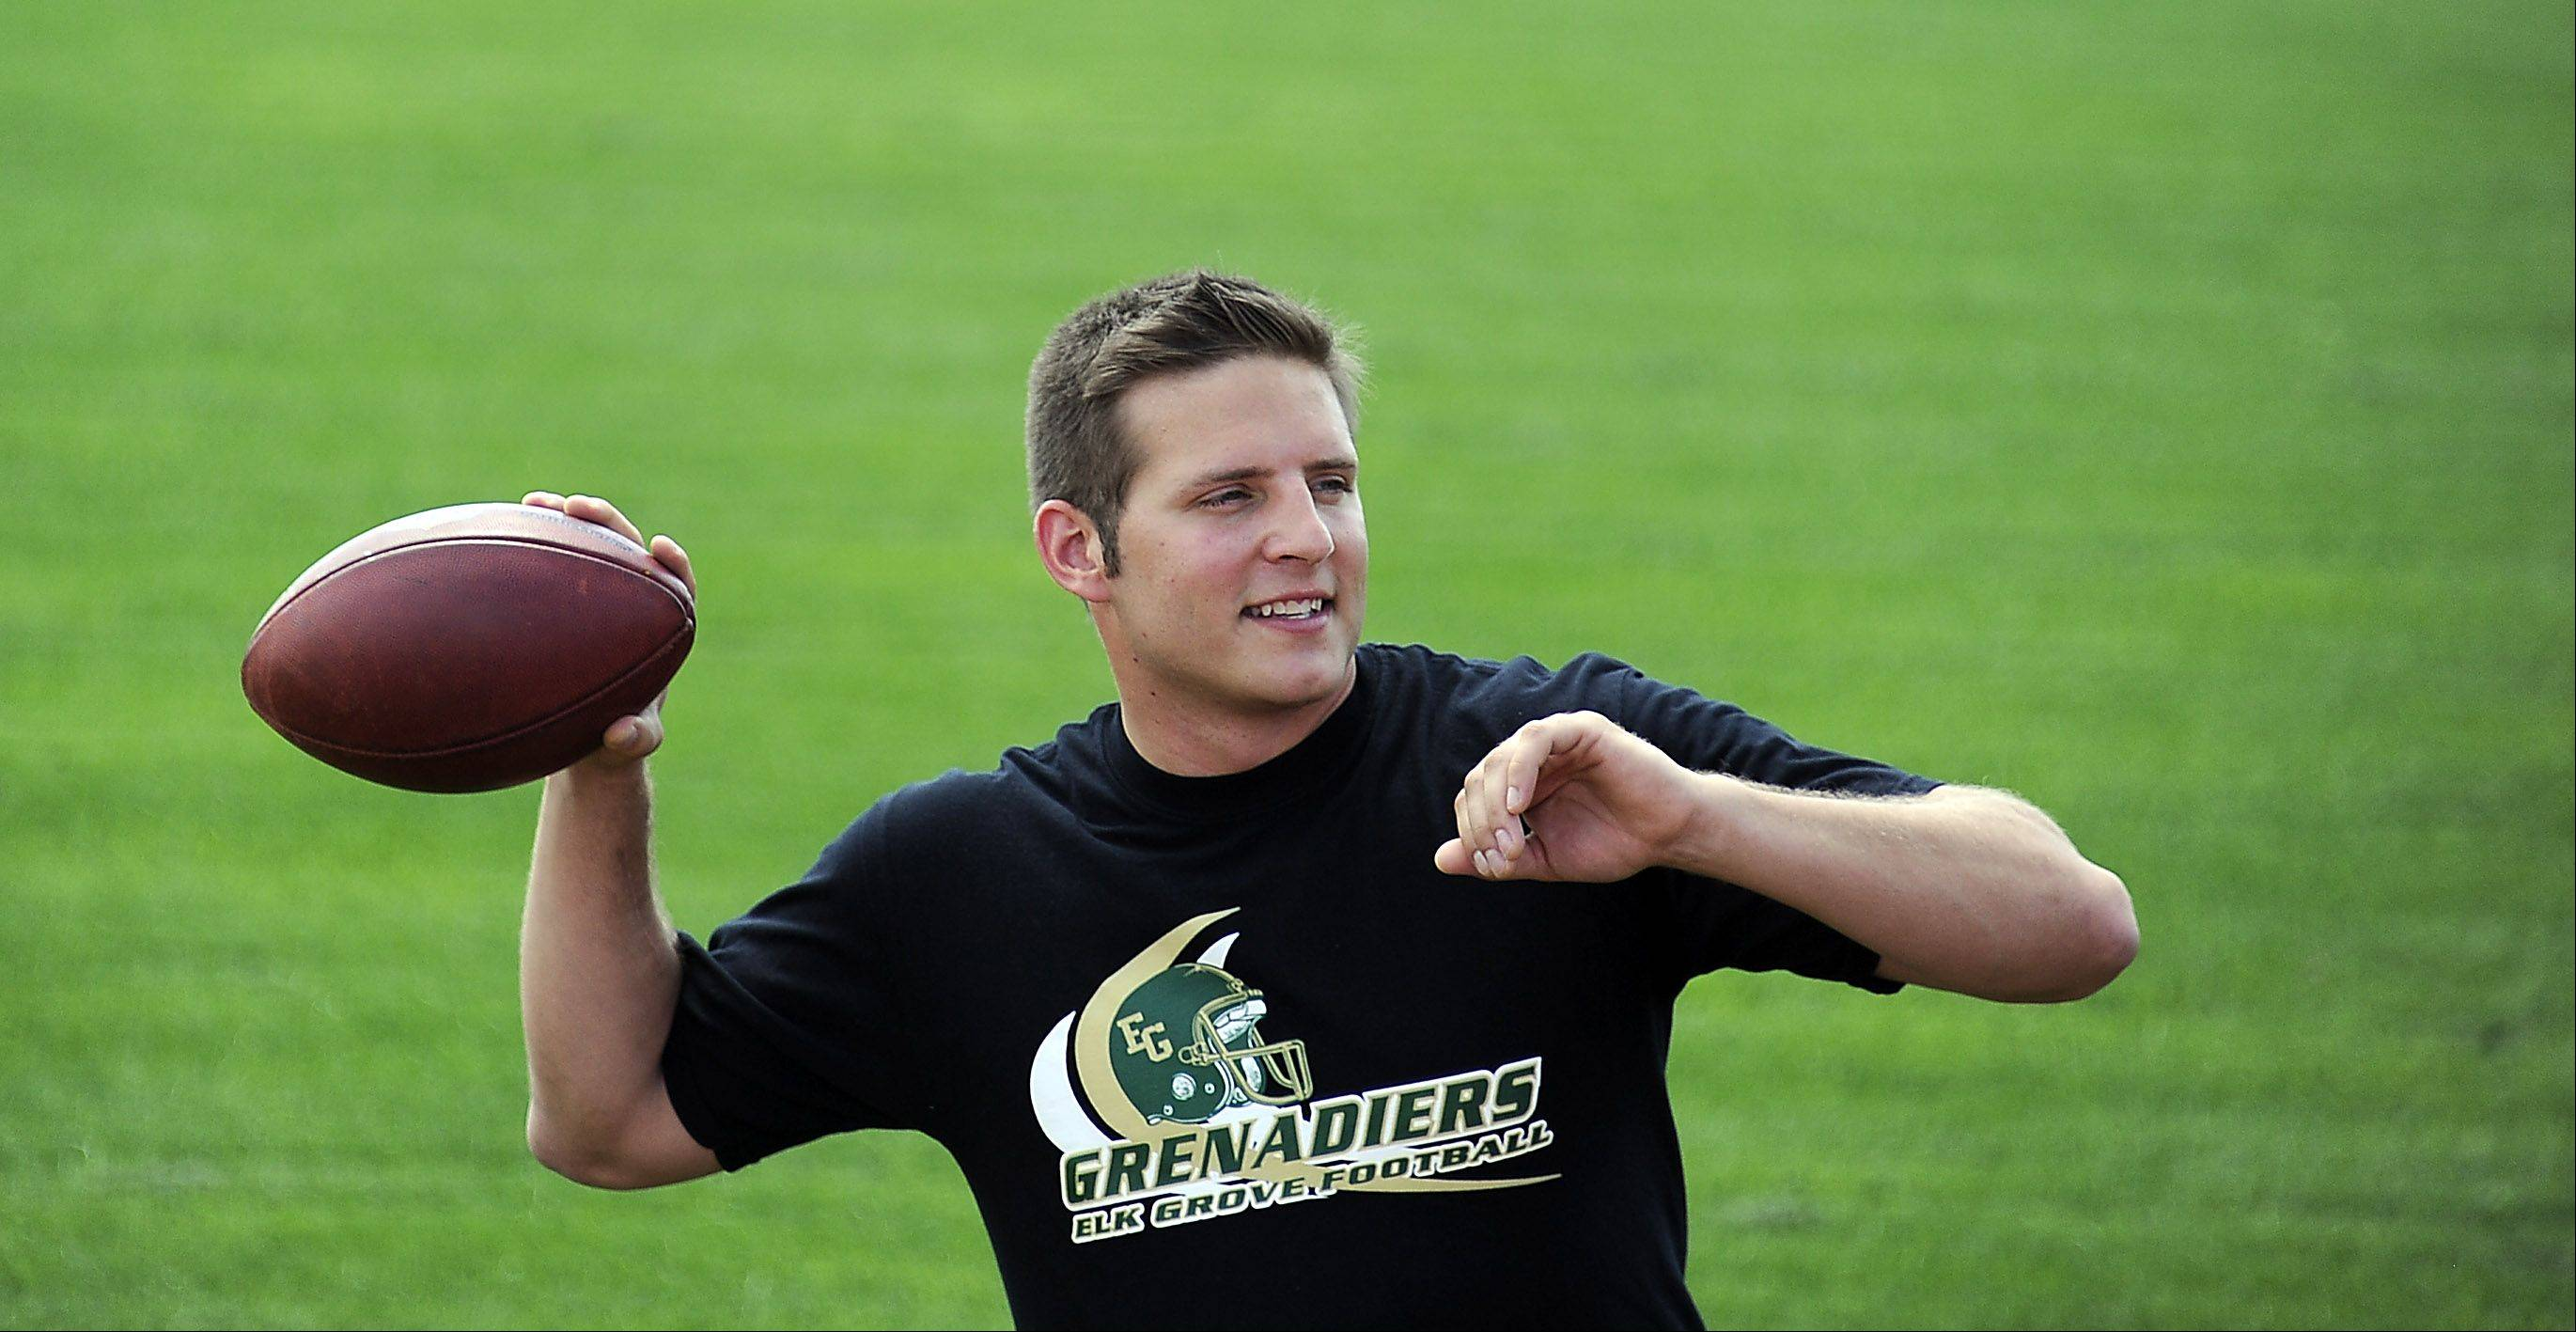 Elk Grove High School graduate Tom Kudyba, 28, a former quarterback for the school�s football team, said his goal is to one day be the head coach for the school. But for now, he is going to Brazil to be the head coach for a professional football team there.